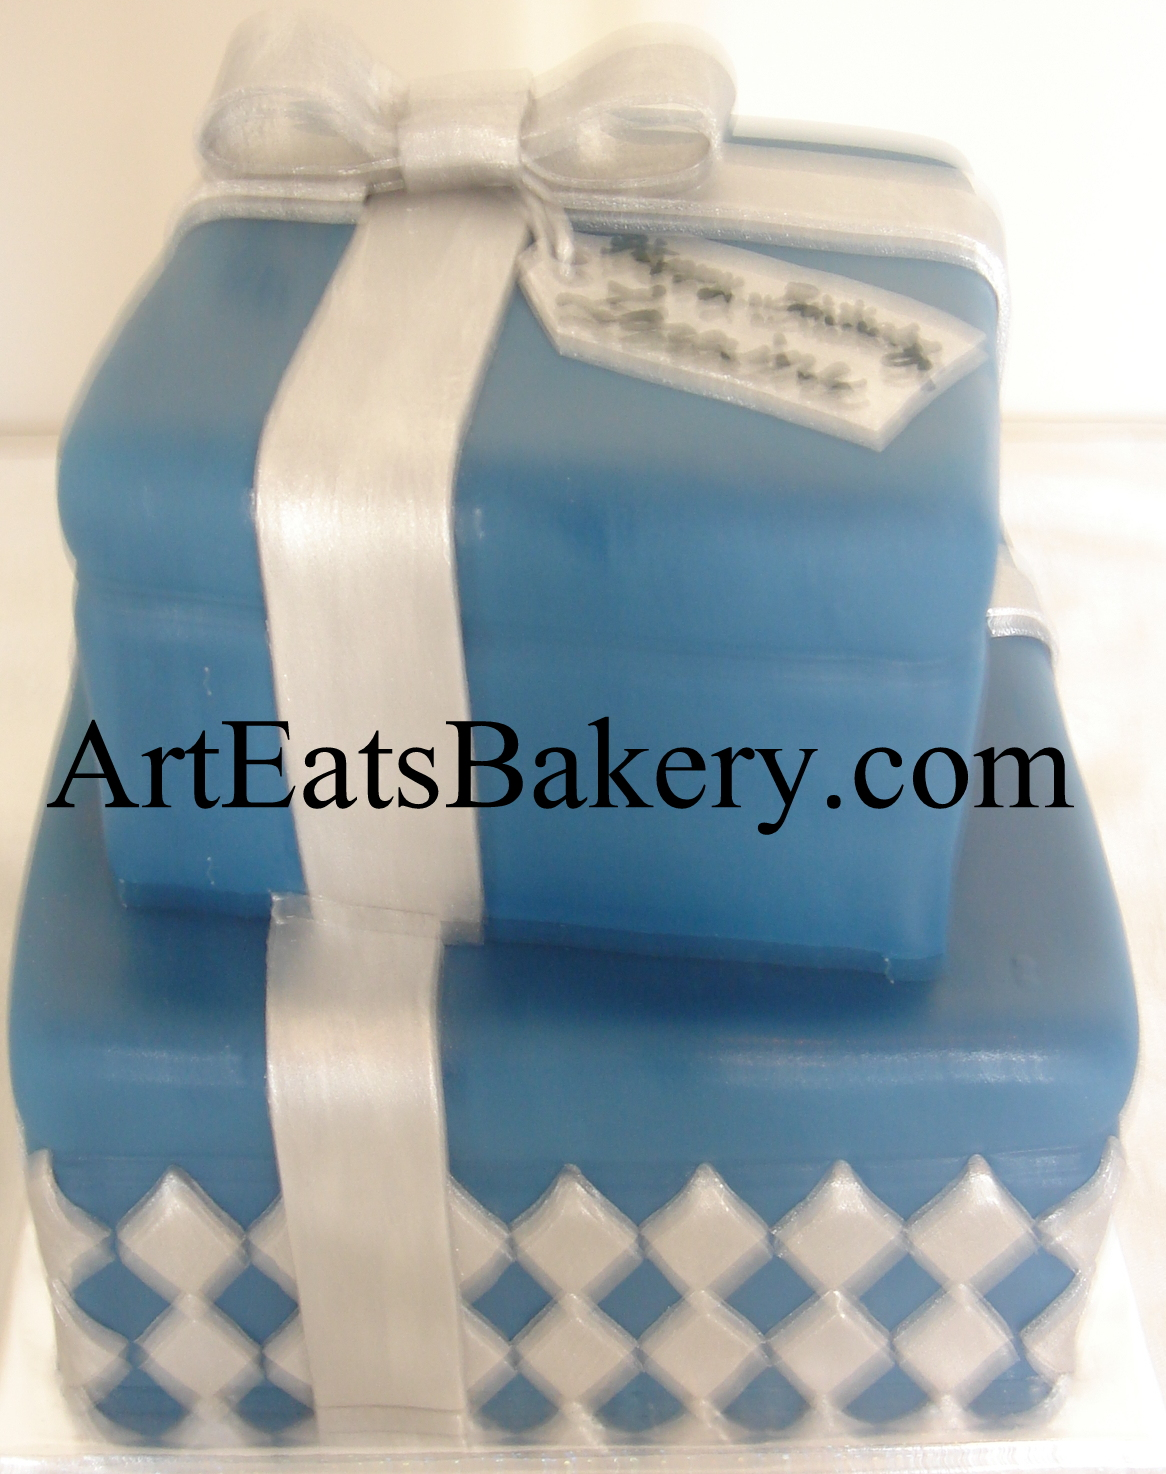 Two tier square blue and silver fondant presents creative custom birthday cake design with diamonds, bow and edible name tag.jpg